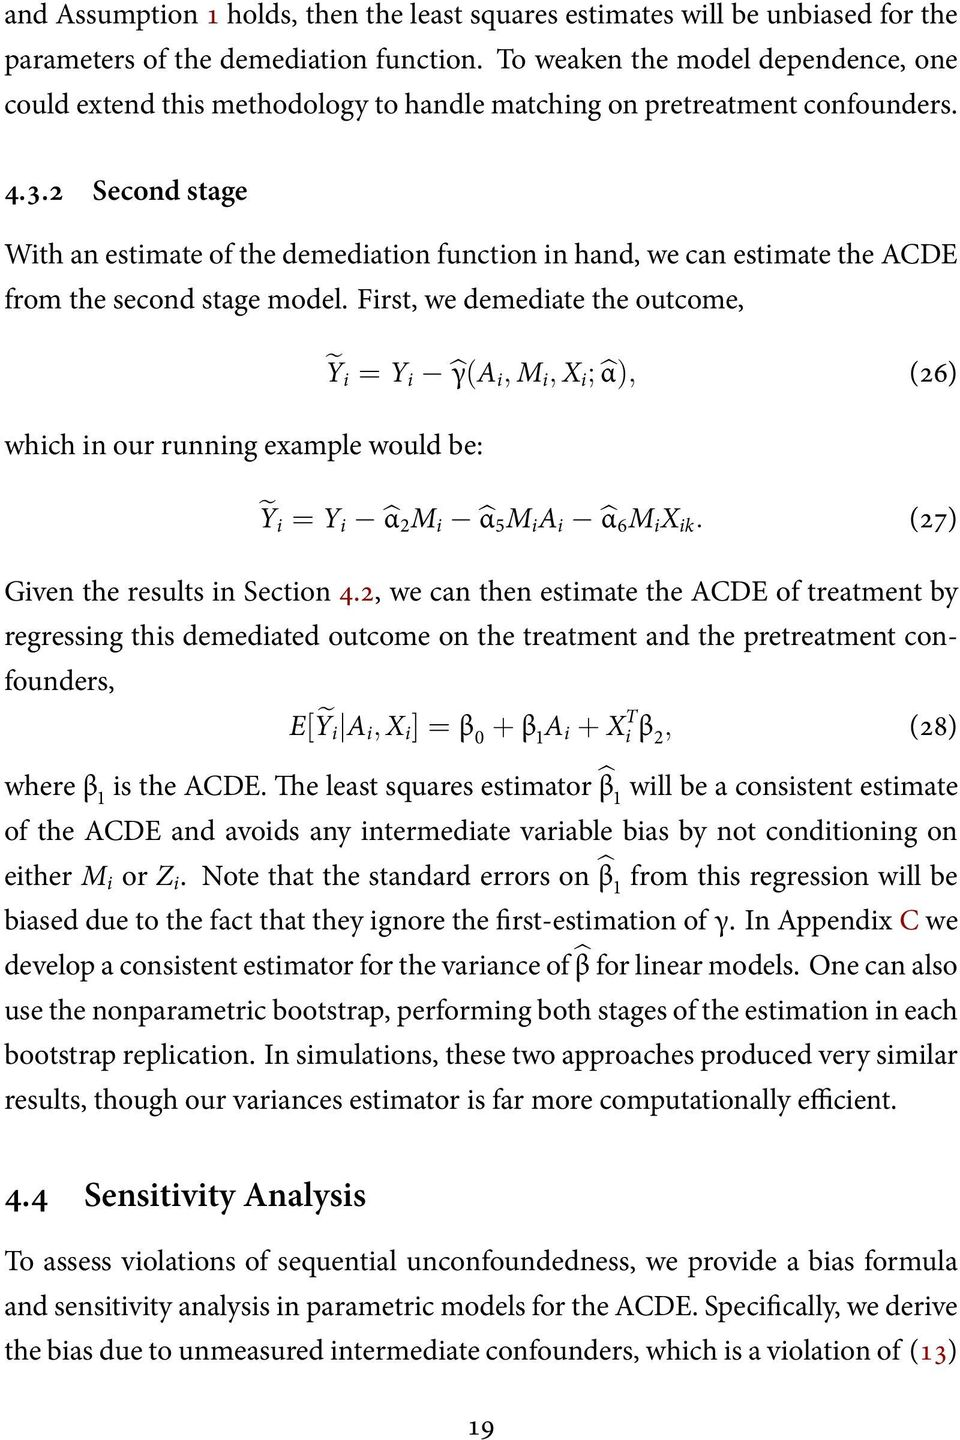 2 Second stage With an estimate of the demediation function in hand, we can estimate the ACDE from the second stage model.